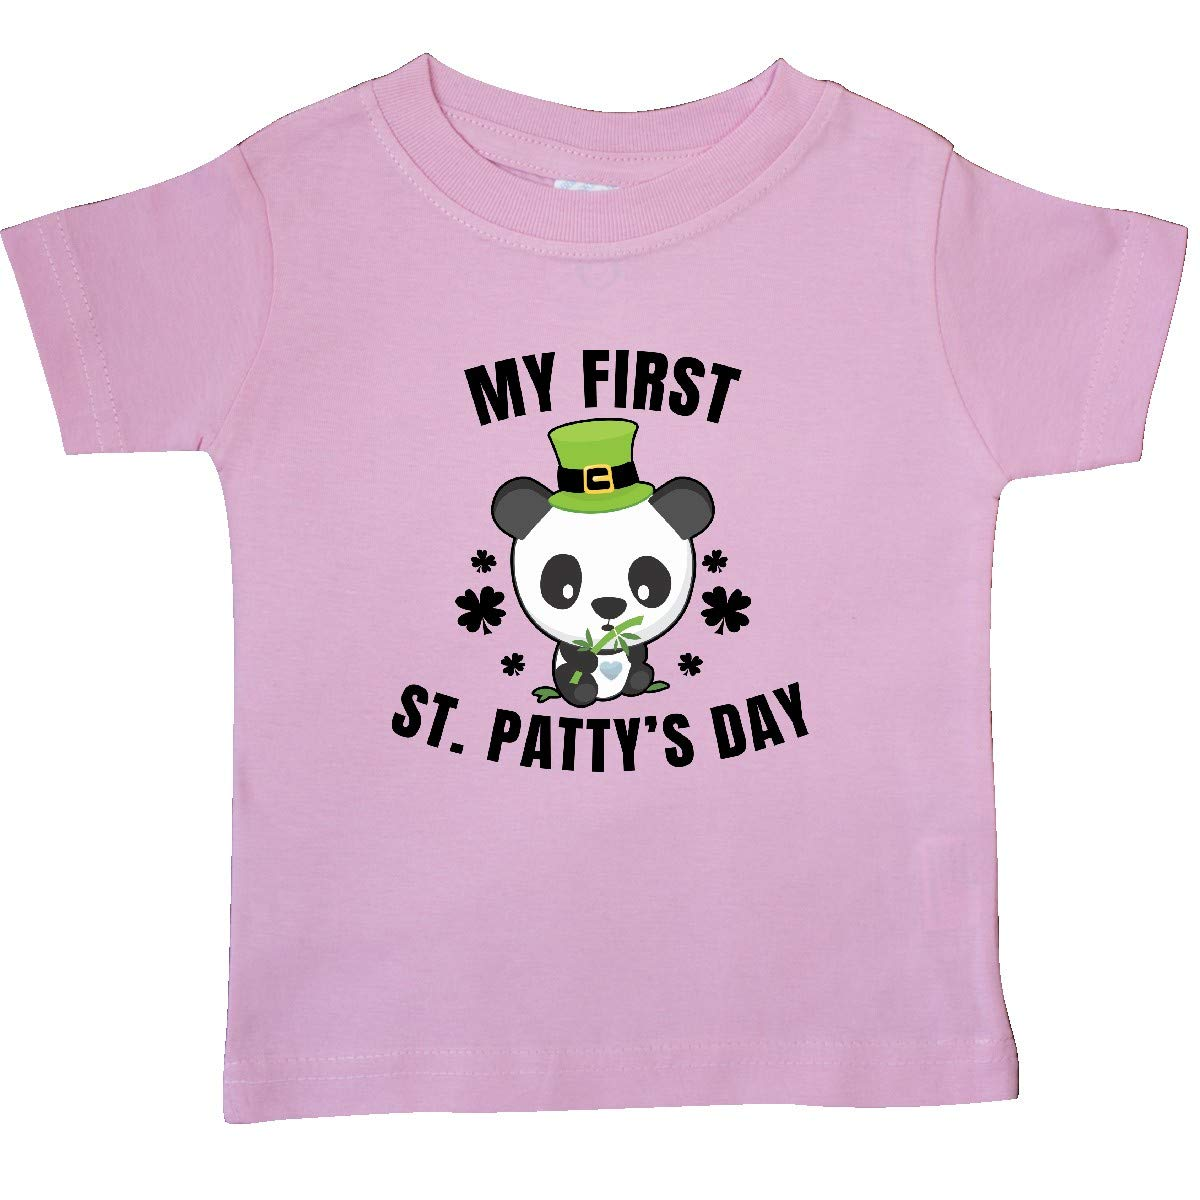 inktastic My First St Pattys Day with Cute Panda Baby T-Shirt